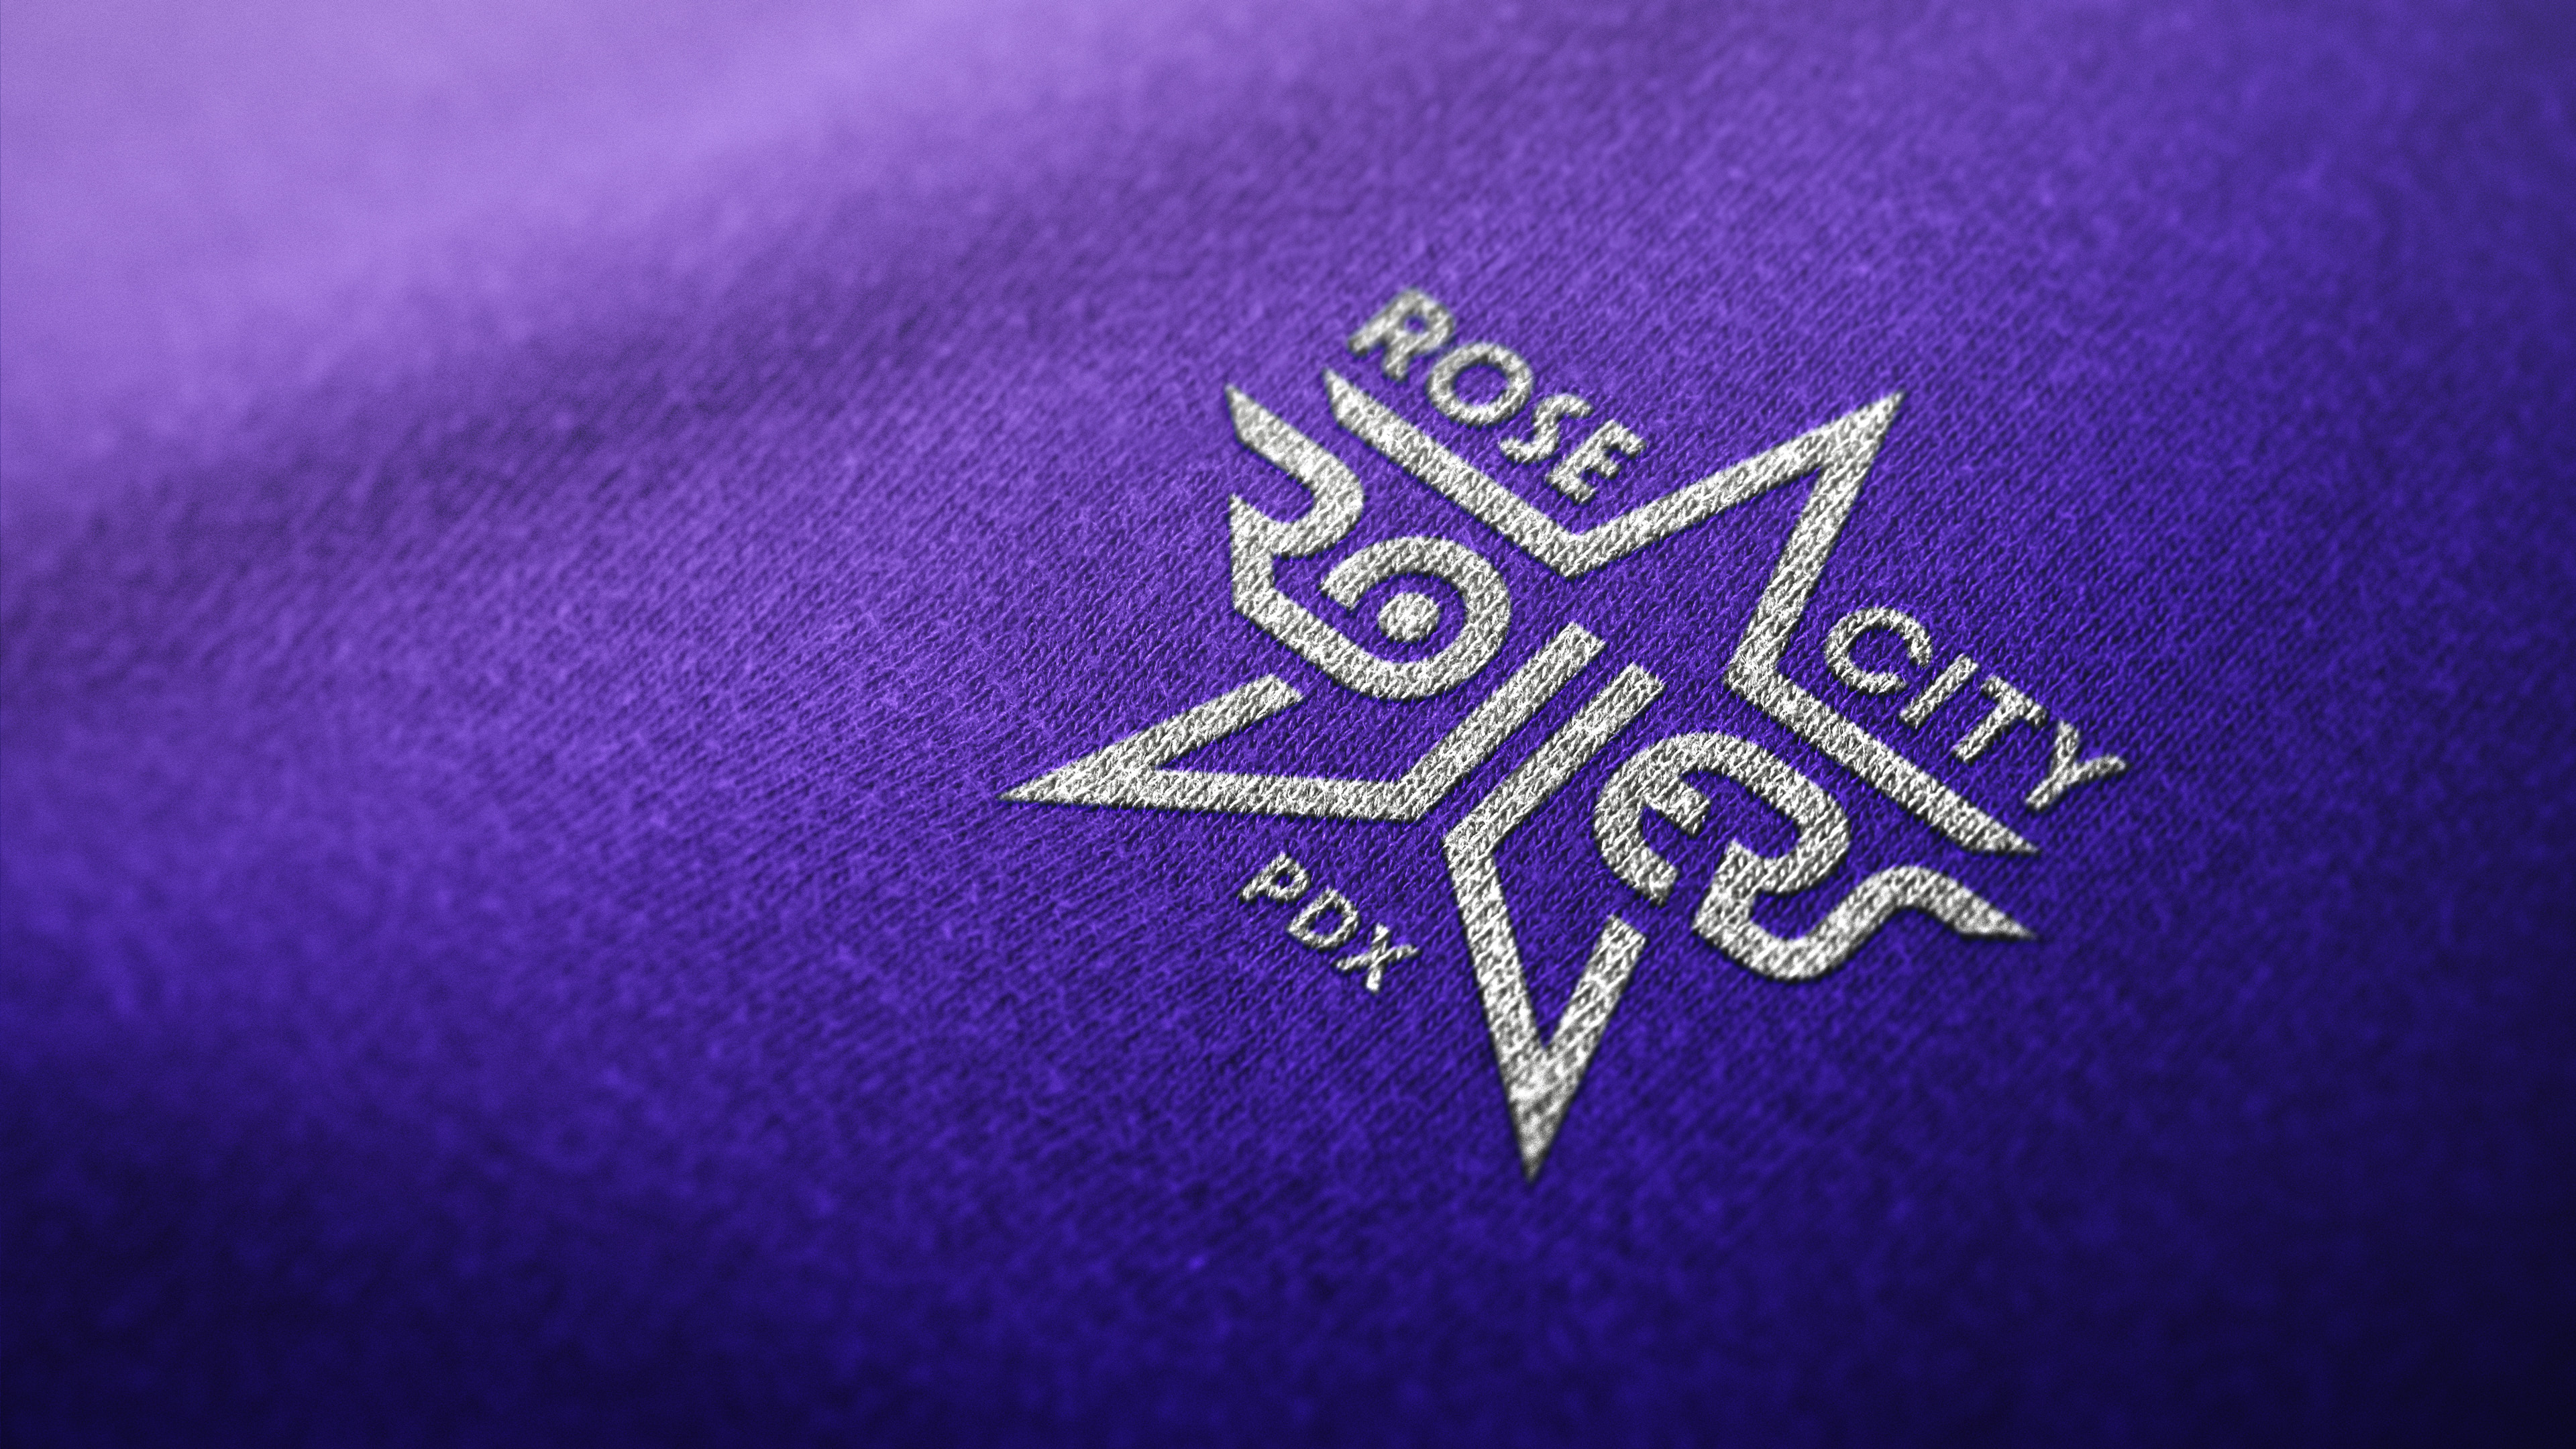 Logo-Mockup-Sweater